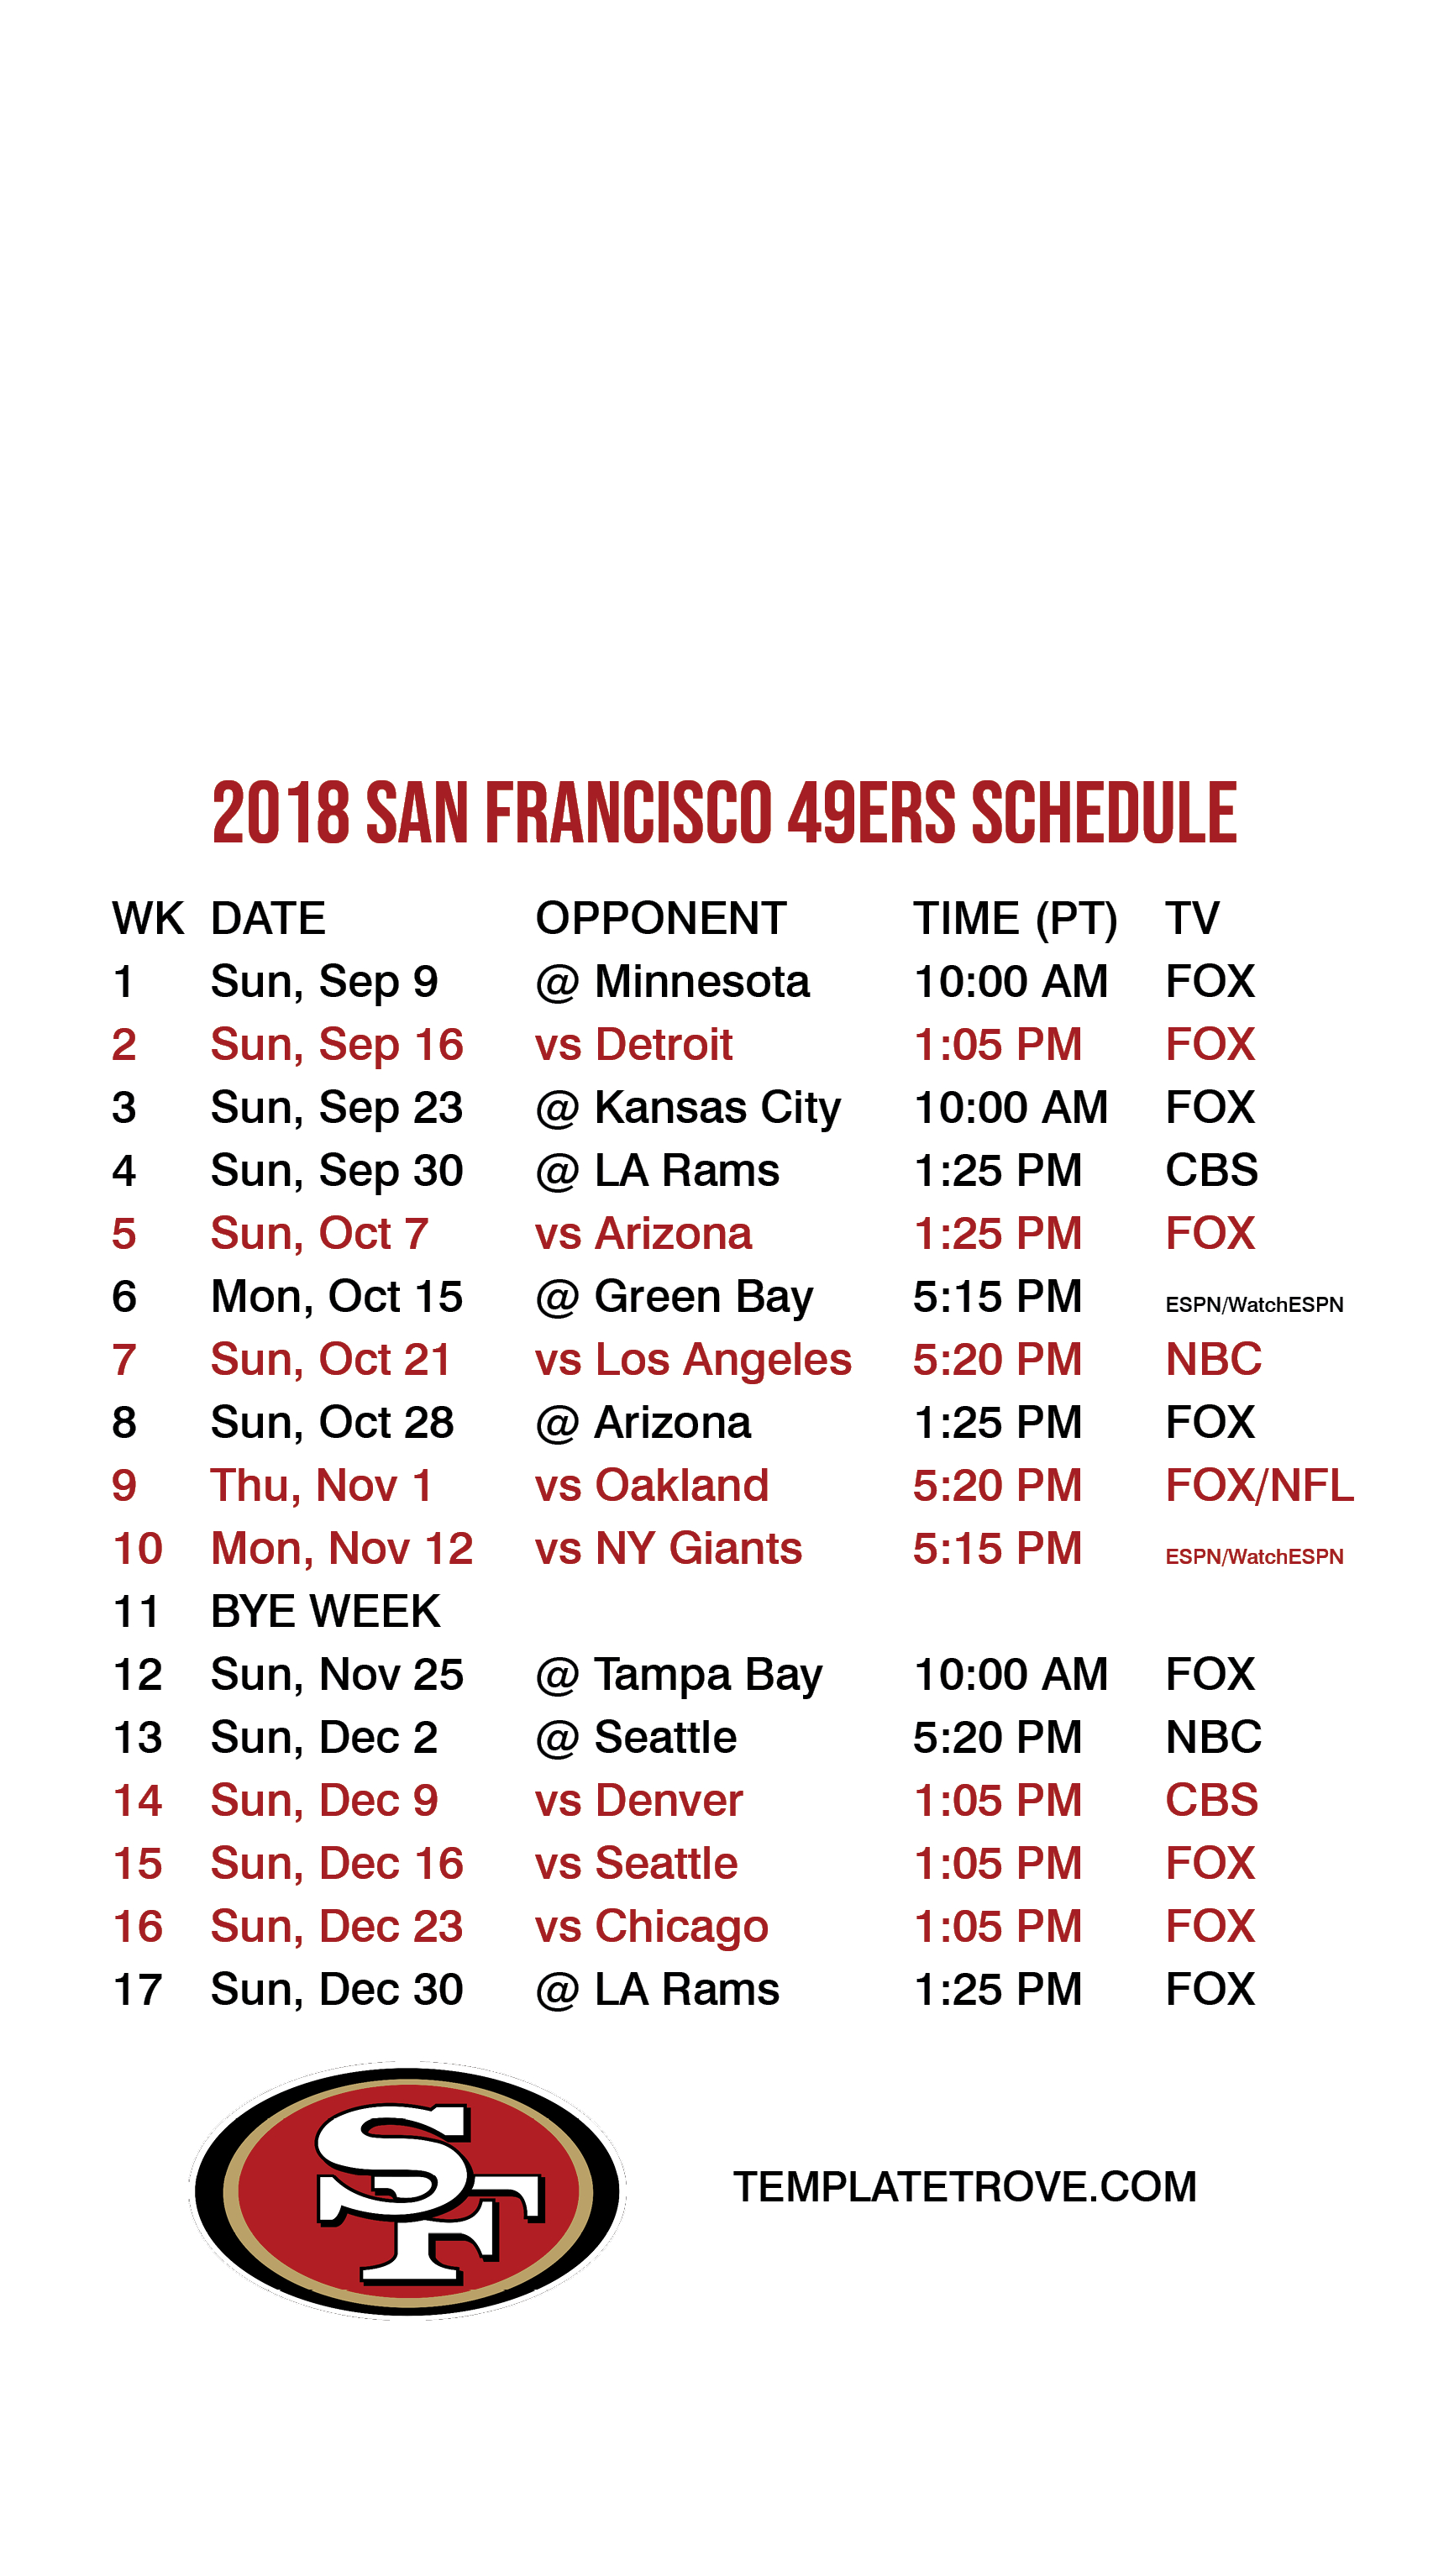 2018-2019 San Francisco 49Ers Lock Screen Schedule For Iphone 6-7-8 Plus 49Ers Calendar 2019